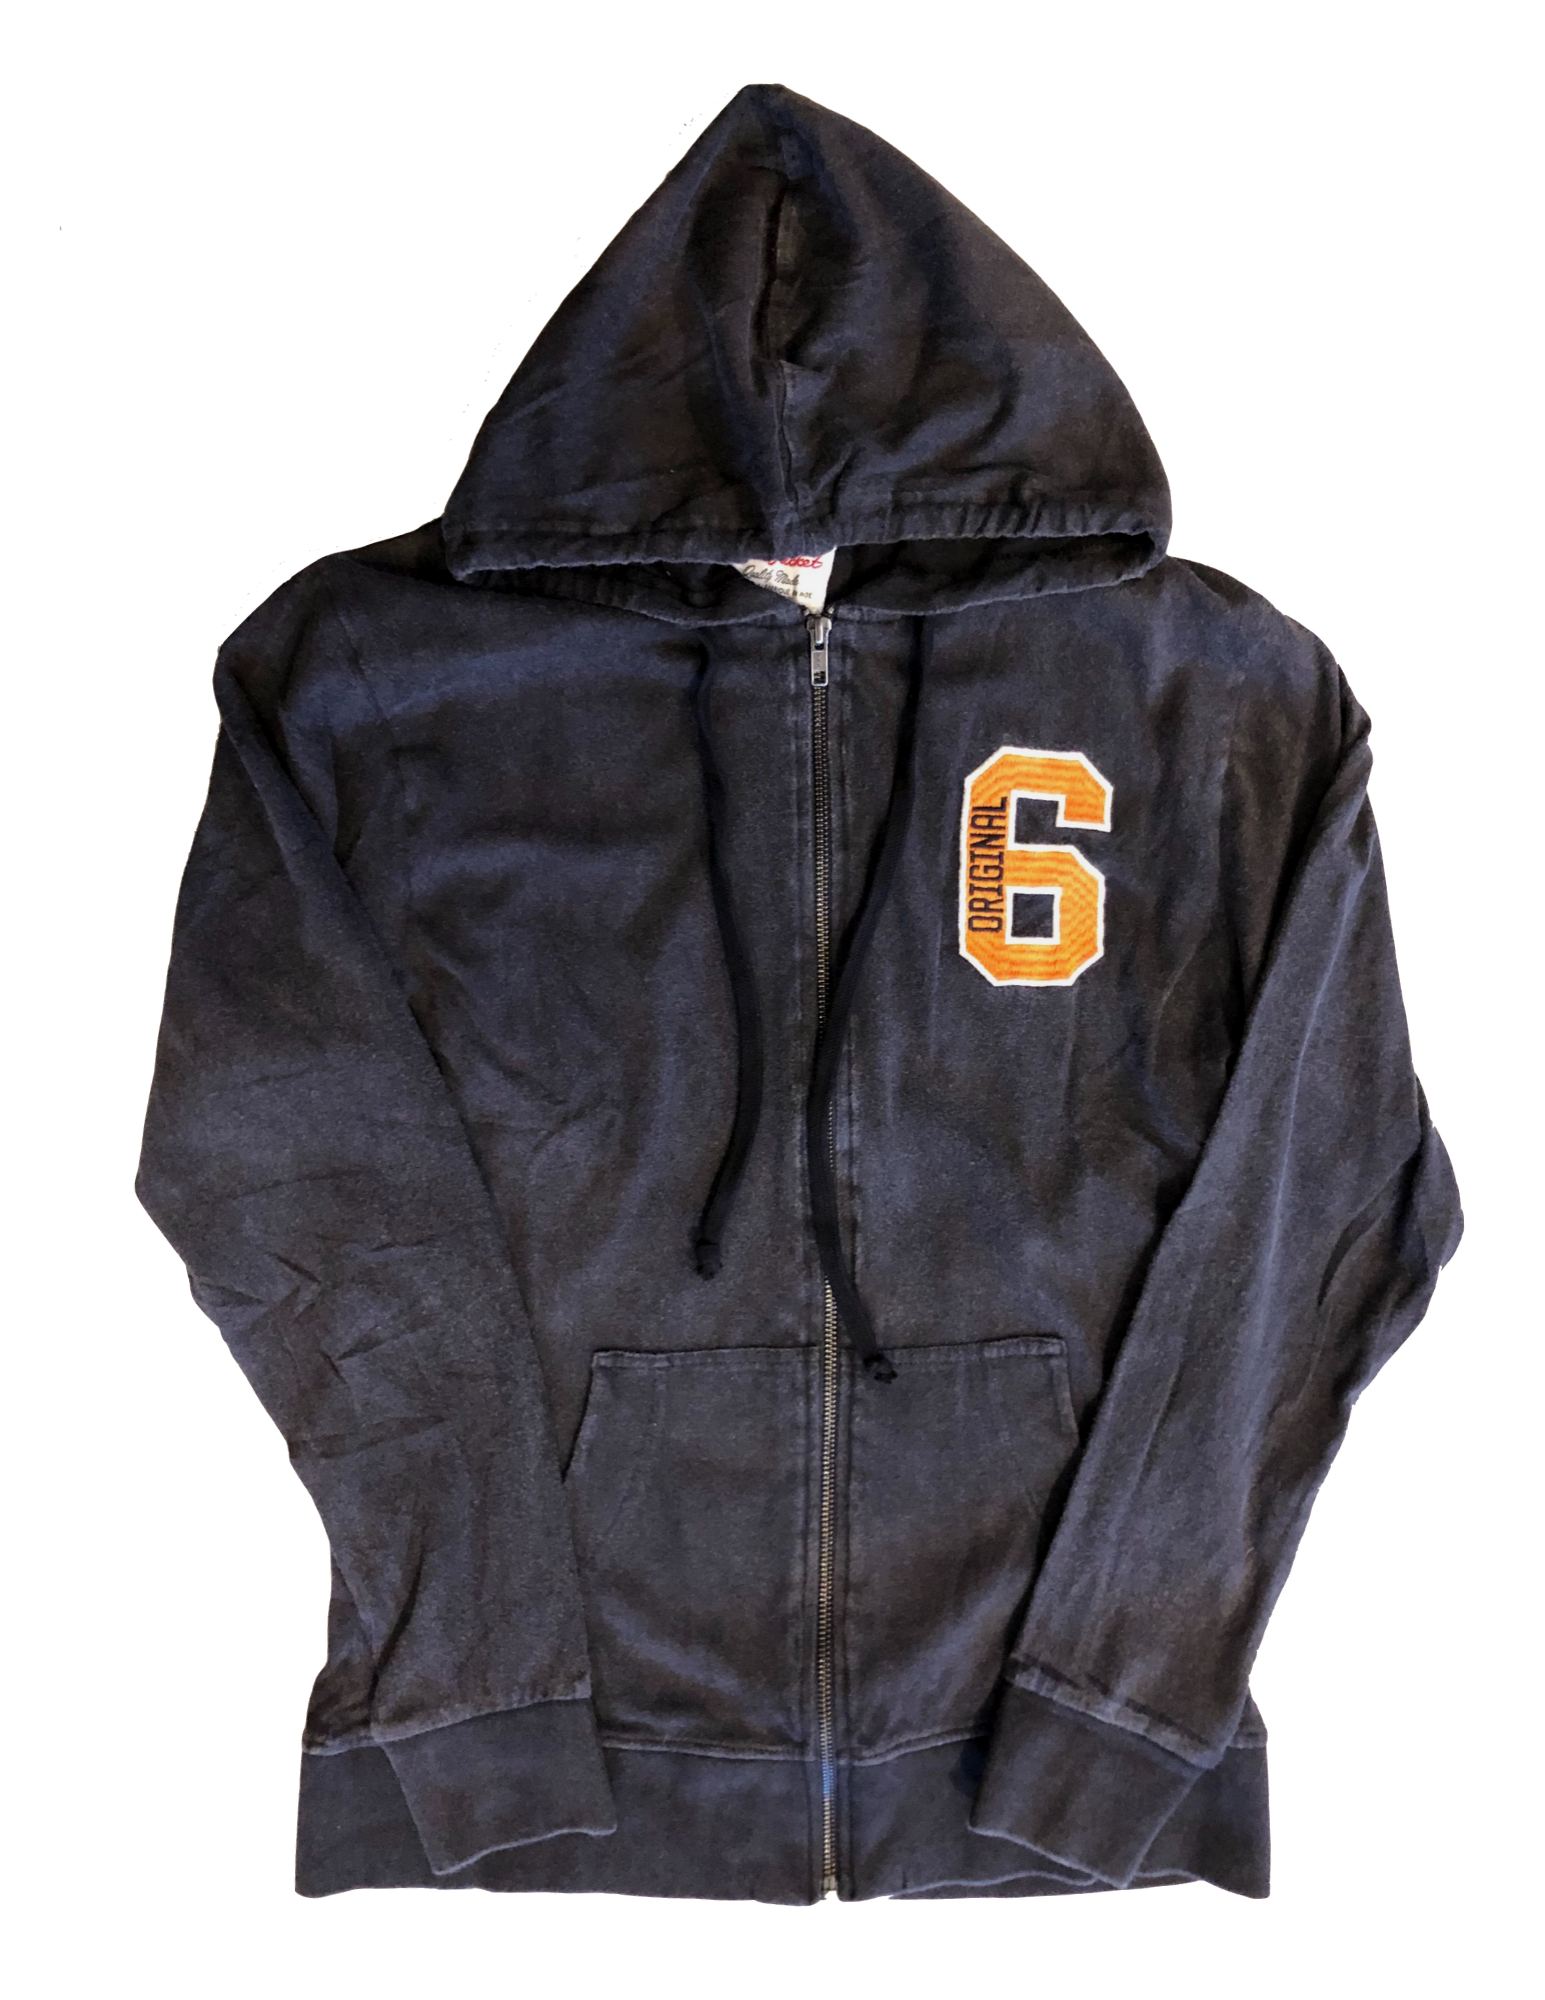 The Original Six NHL Hoody